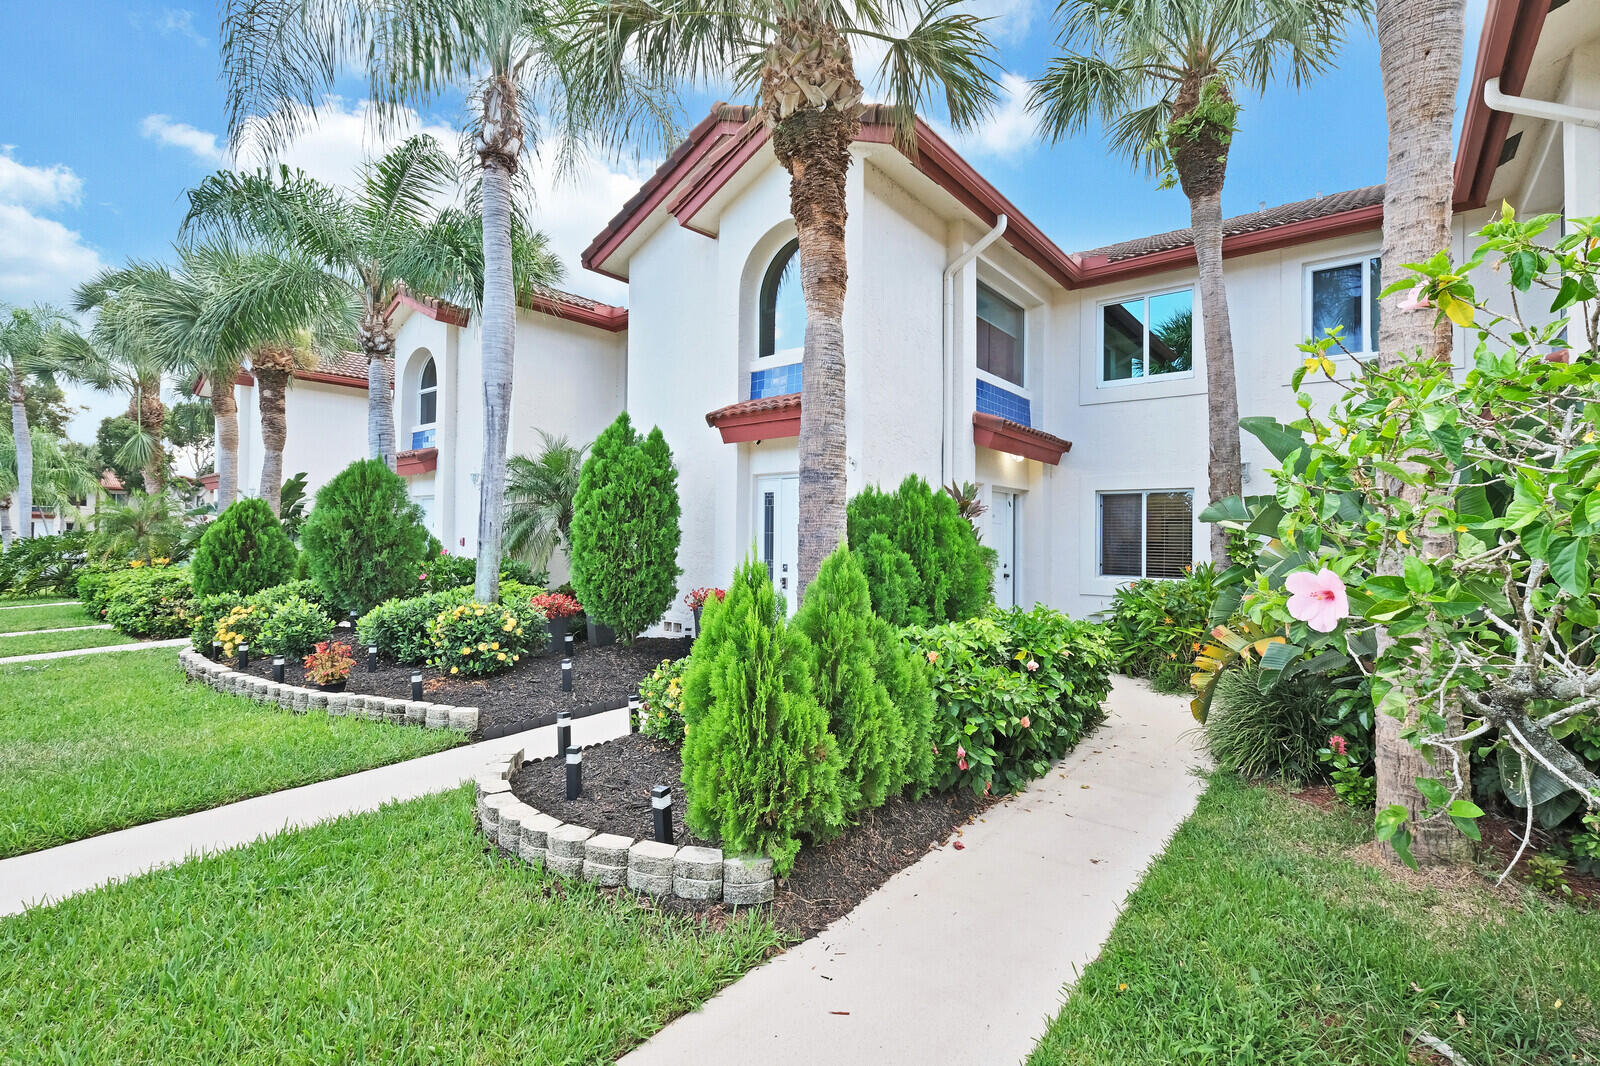 460 NW 67th Street L103 For Sale 10742633, FL